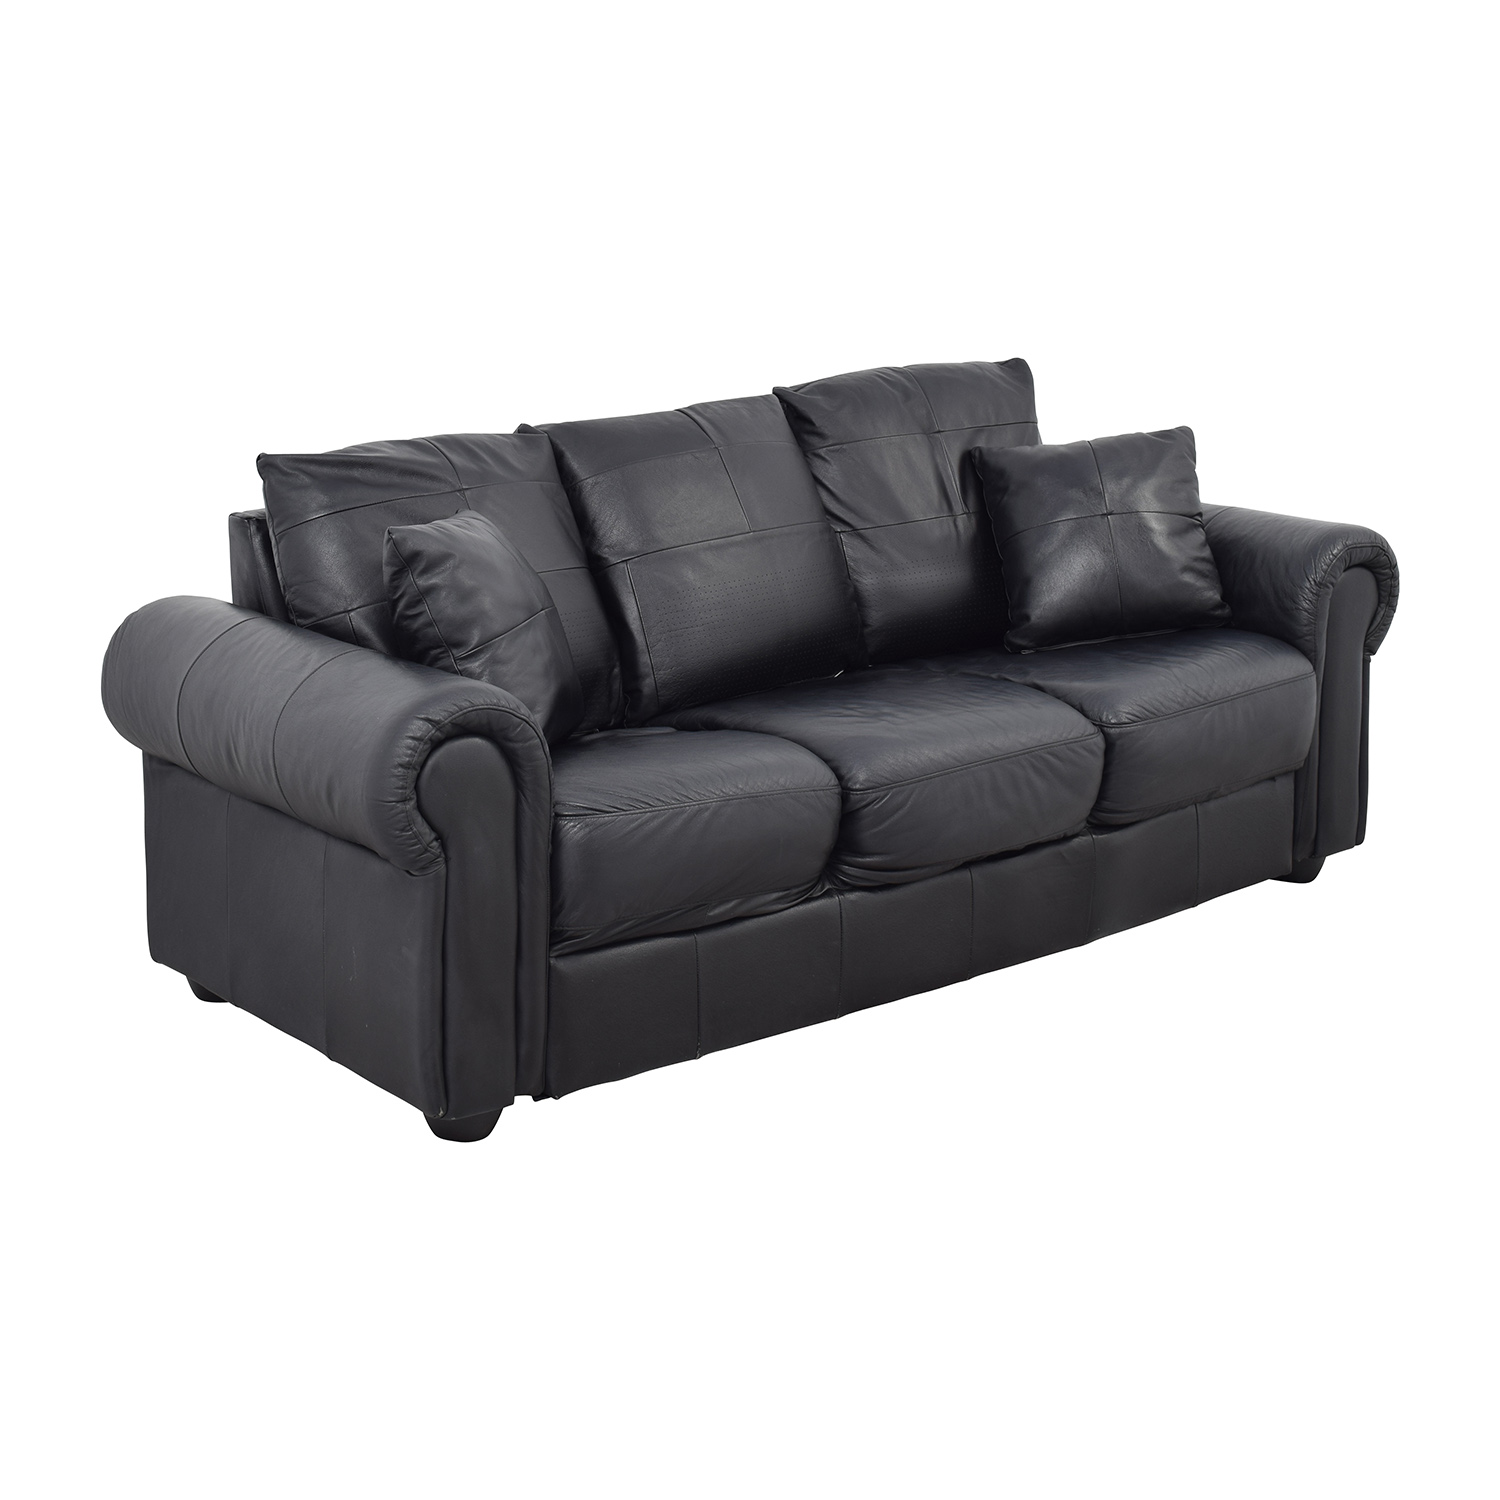 ABC Carpet & Home Black Leather Couch sale